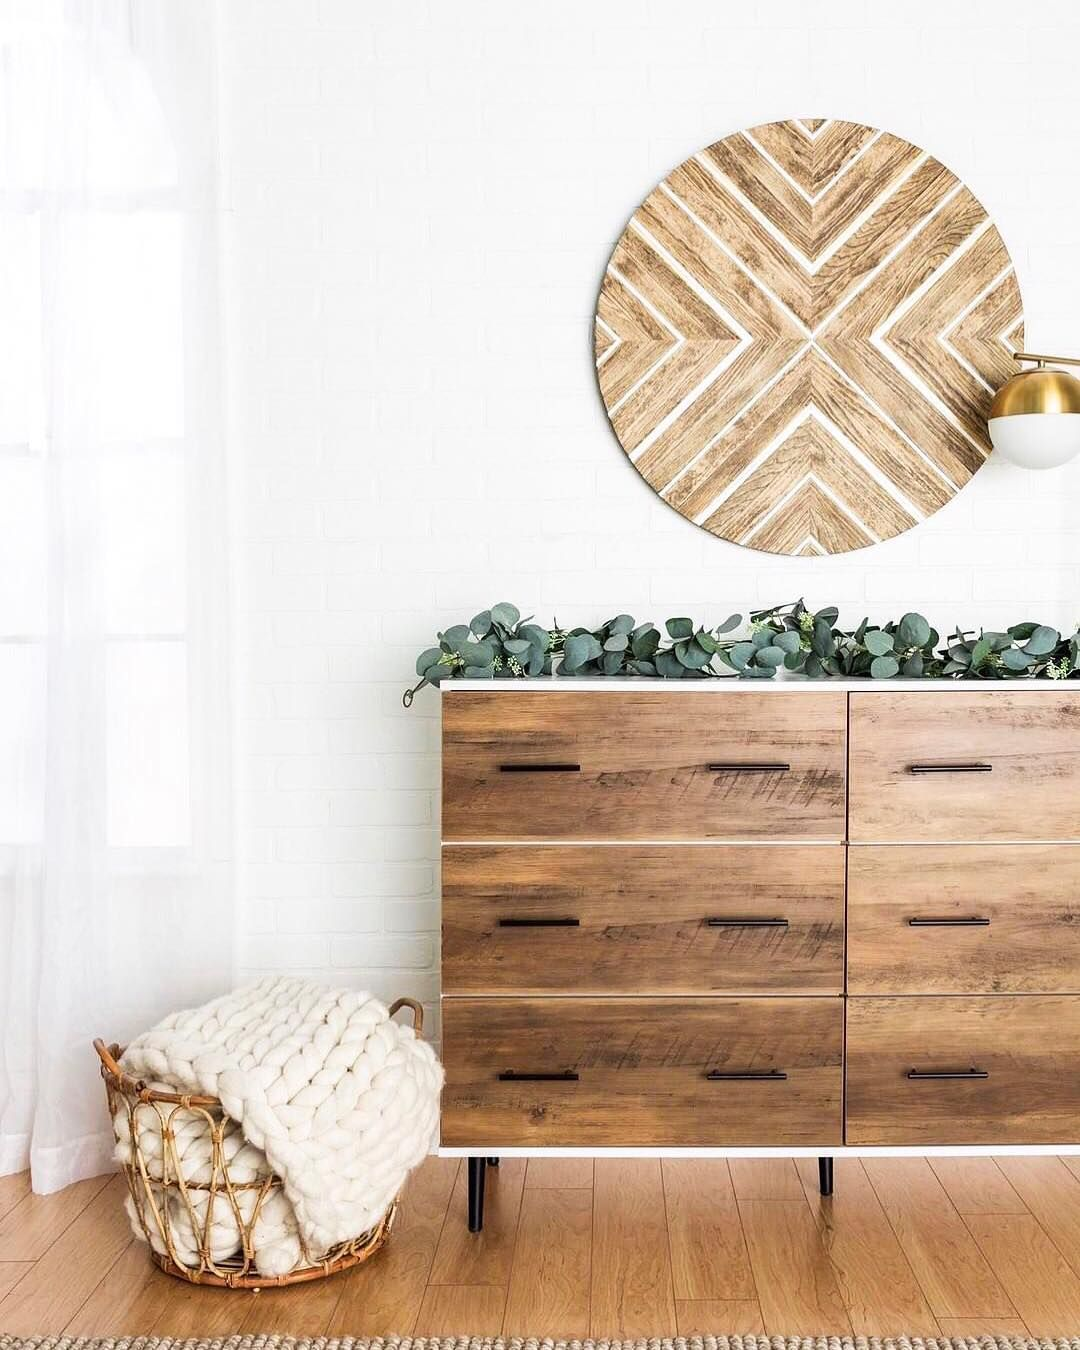 Beautiful Custom Wood Wall Art Is Perfection Above This Midcentury Modern Minimal Dresser Absolutely Loving The Simp Fresh Bedroom Basket Wall Decor Furniture